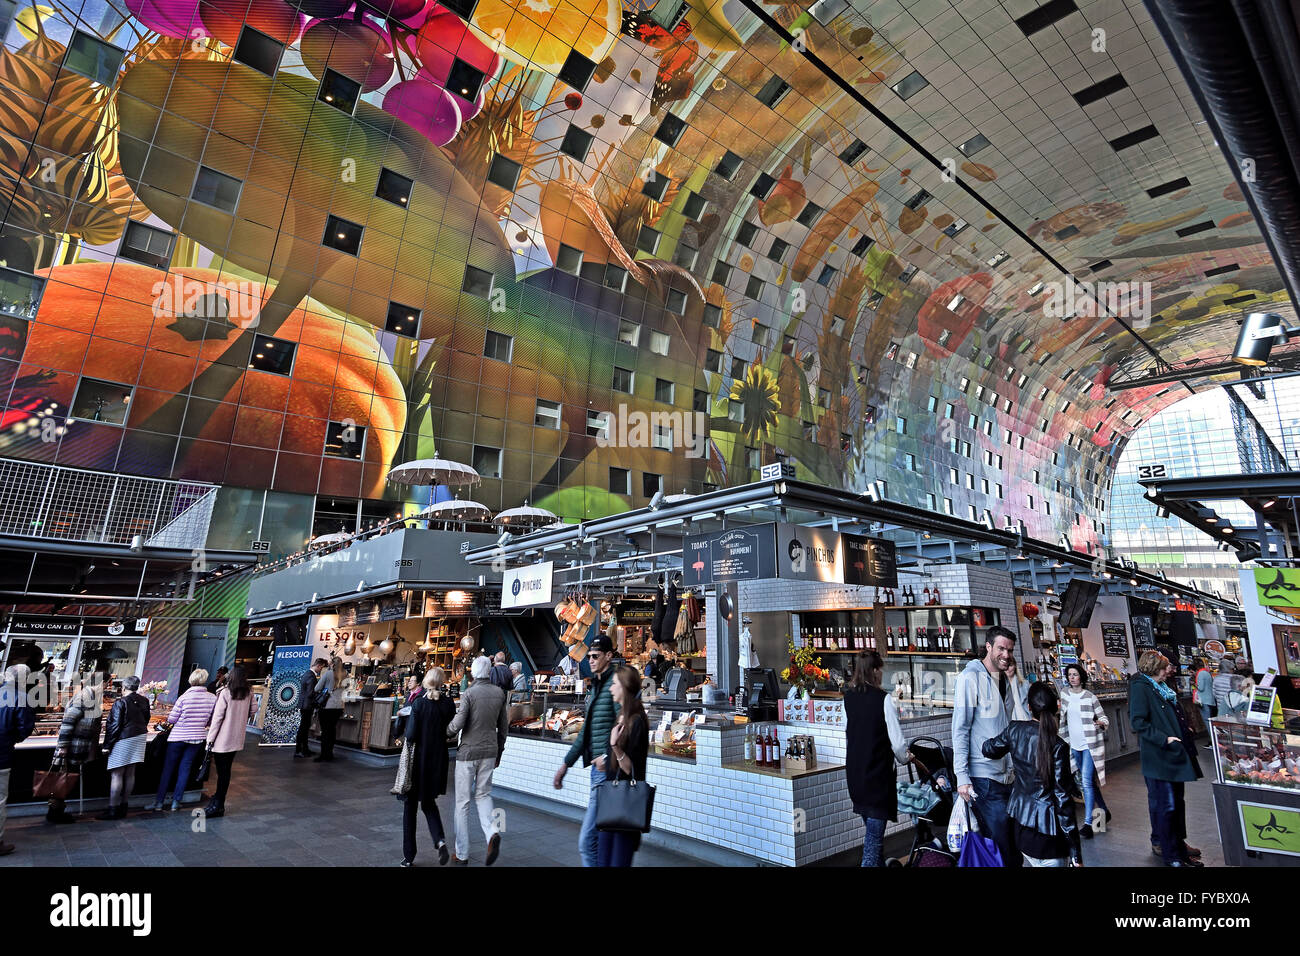 colorful interior of the rotterdamse markthal rotterdam market hall stock photo 102909418 alamy. Black Bedroom Furniture Sets. Home Design Ideas